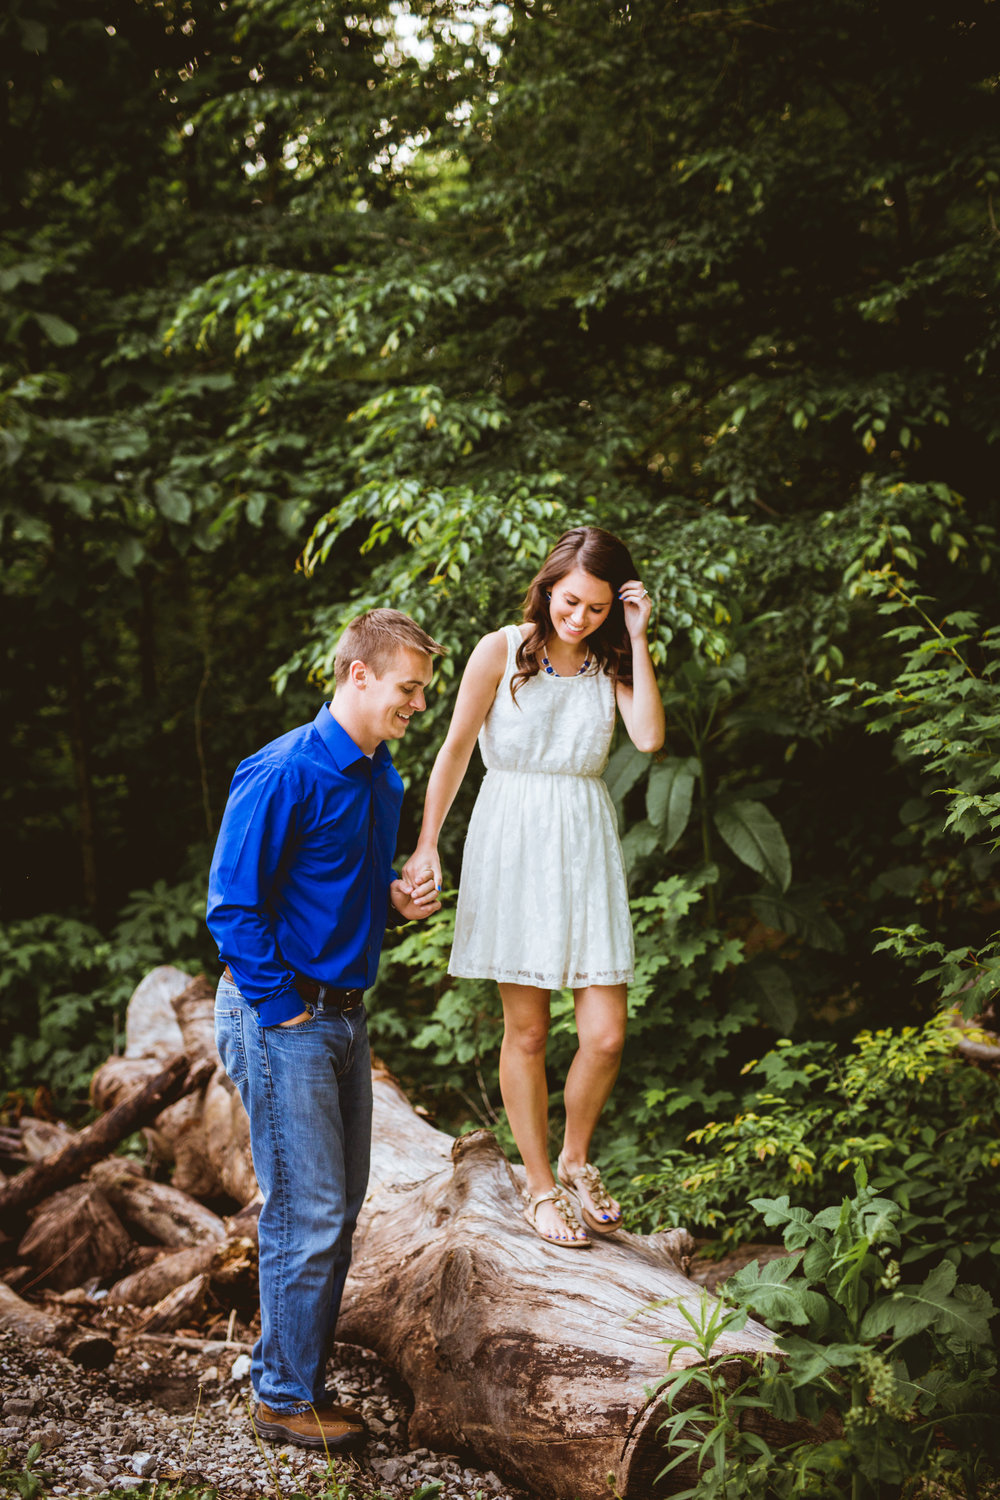 Todd-Hunt Engagement-66.jpg